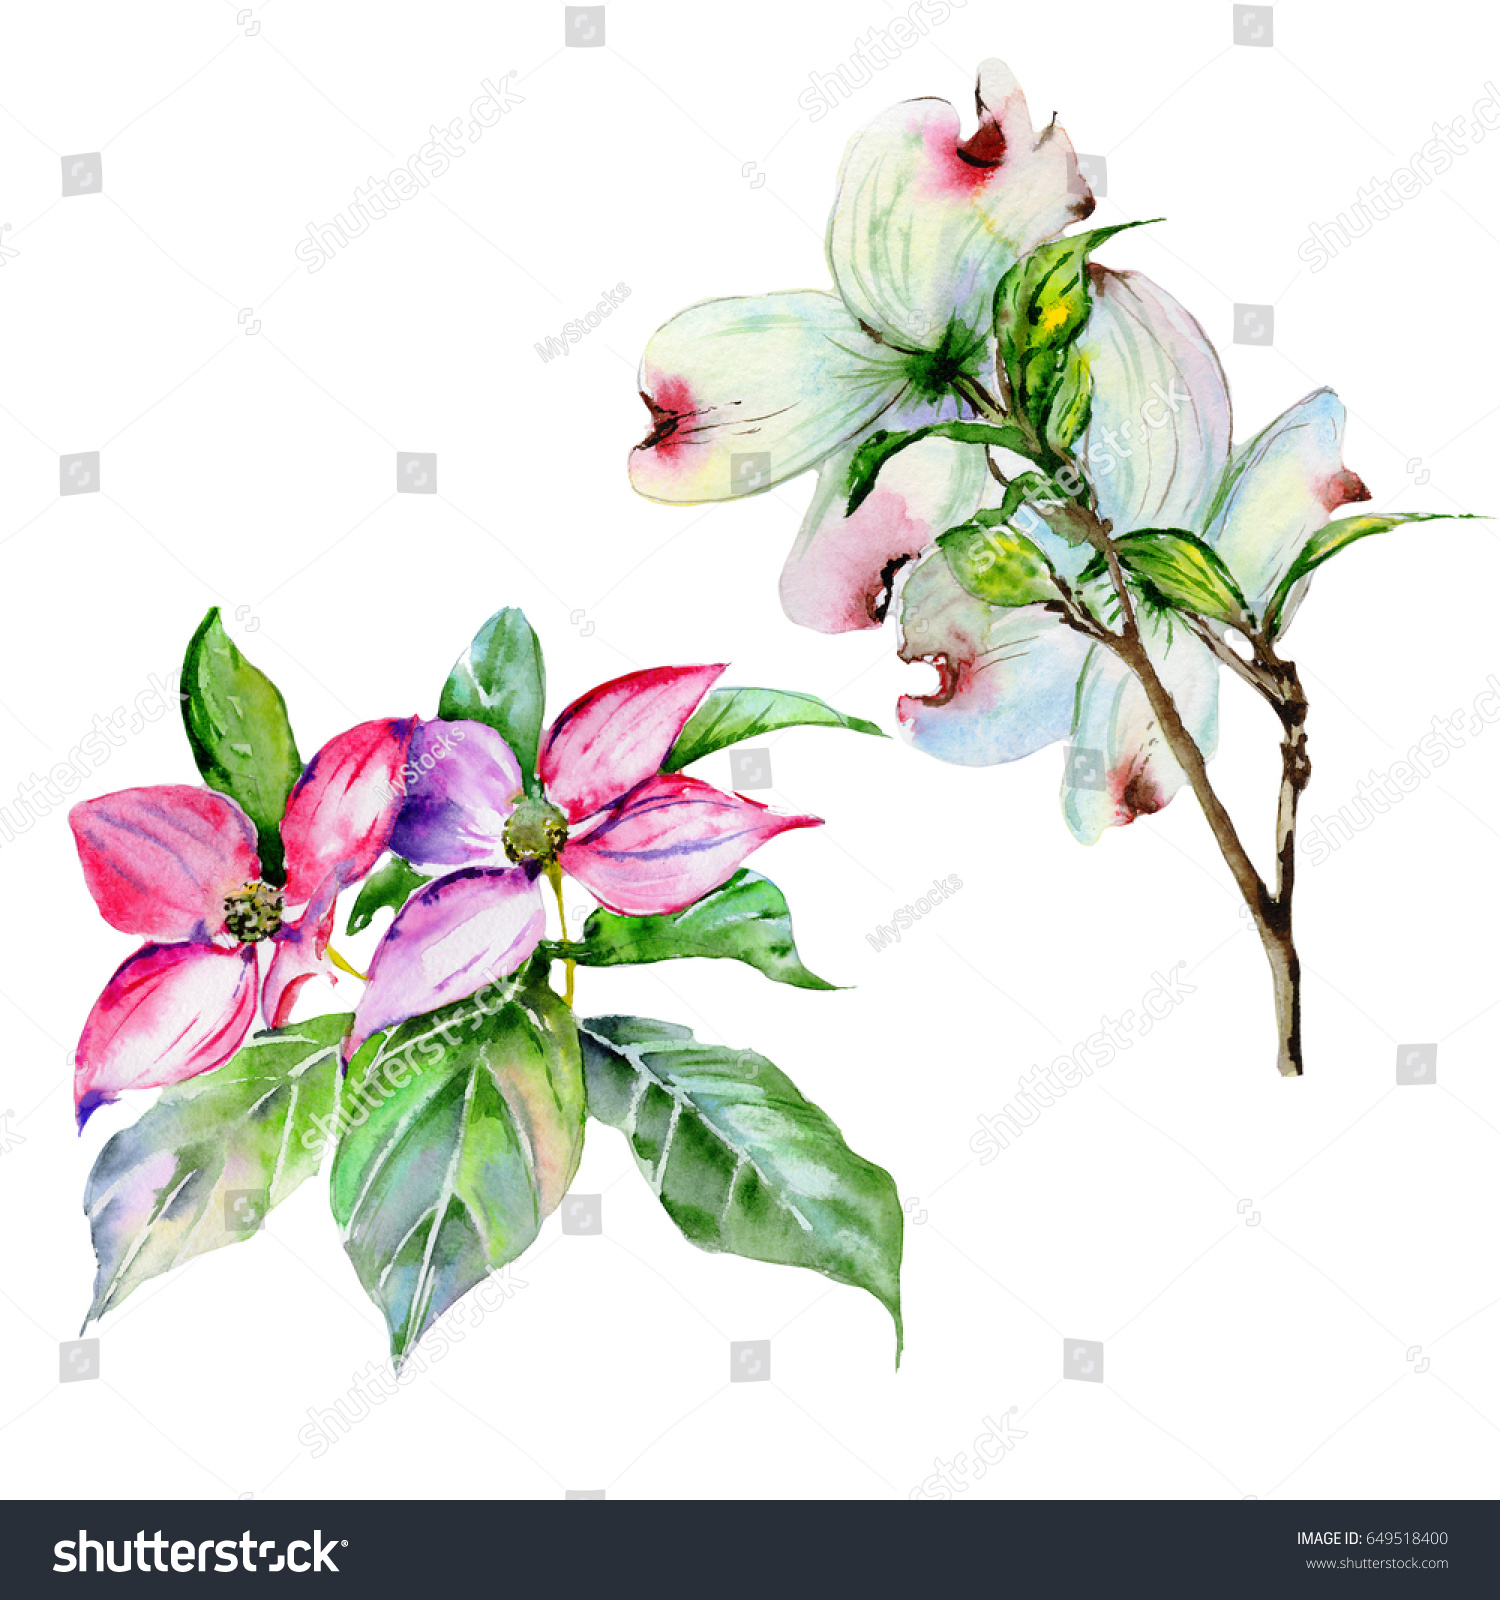 Wildflower Dogwood Flower Watercolor Style Isolated Stock